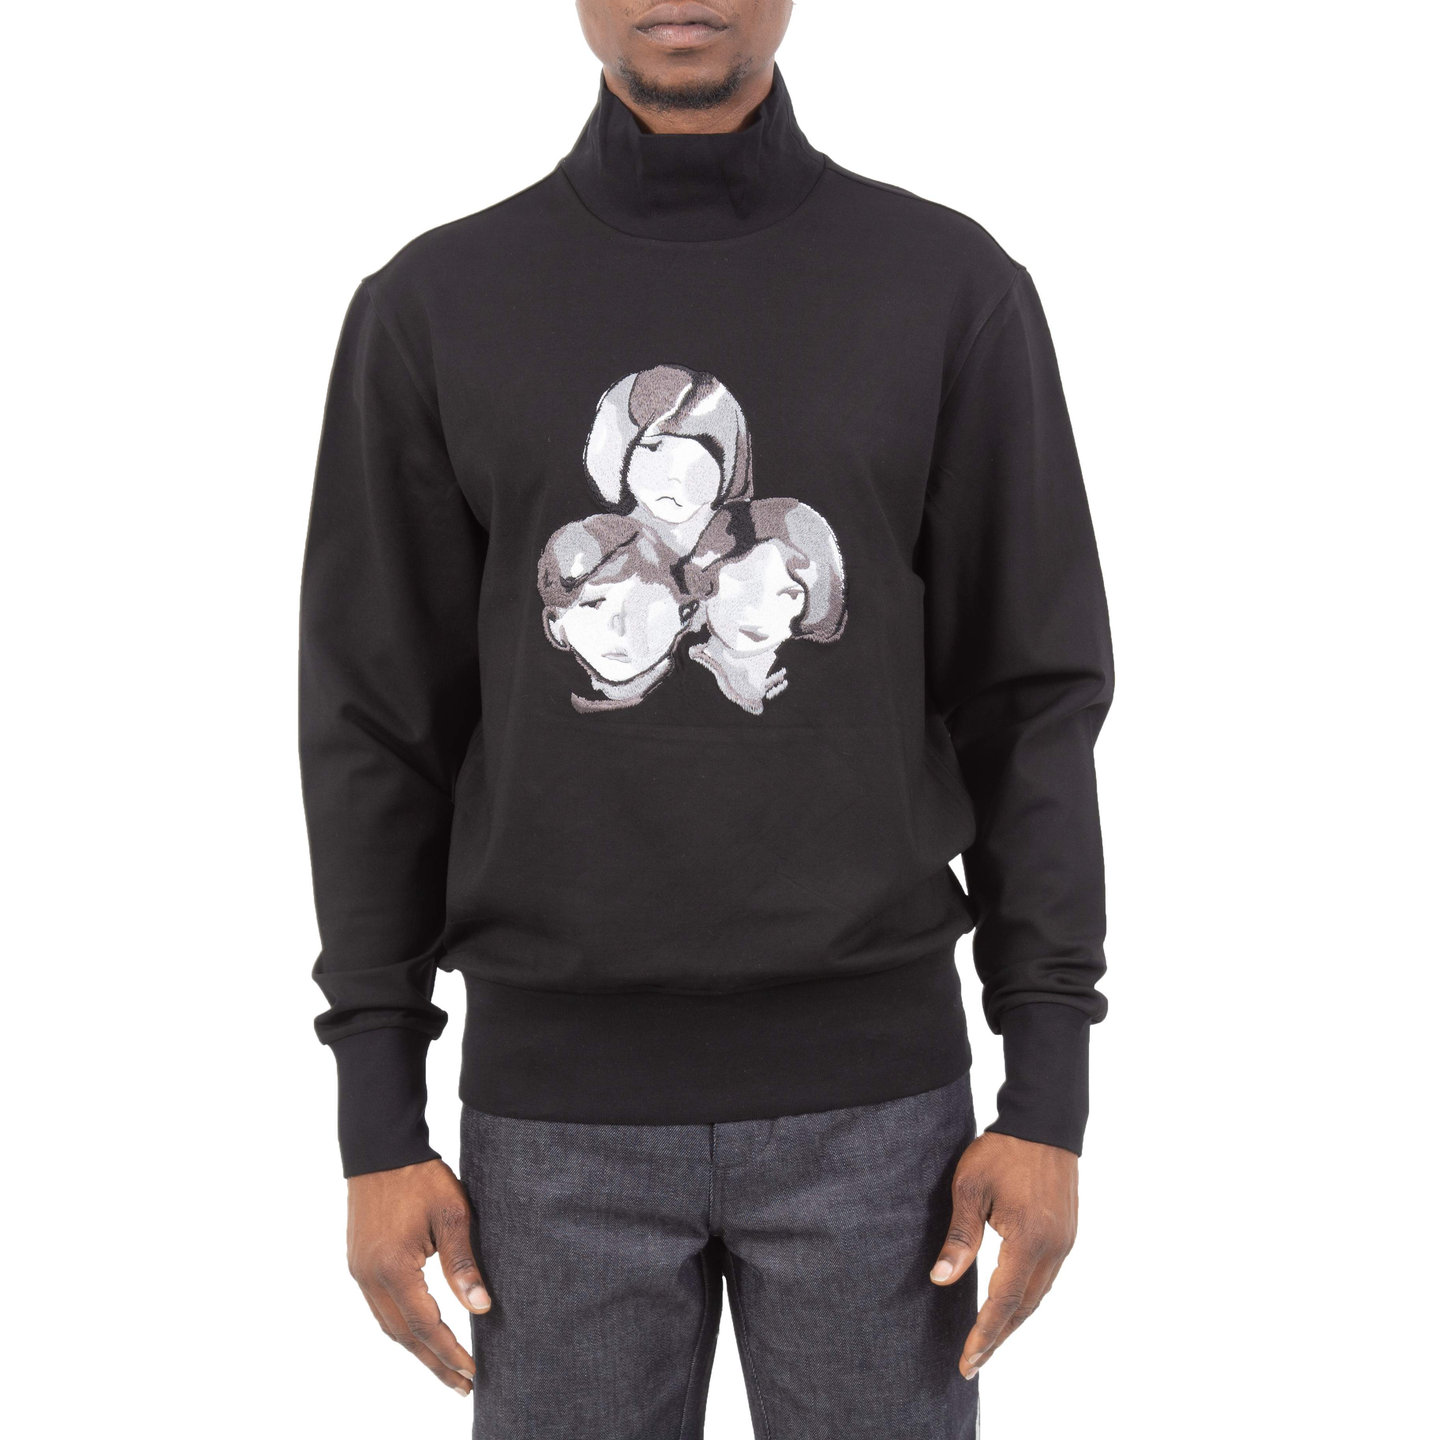 3 Portrait Embroidered Sweatshirt